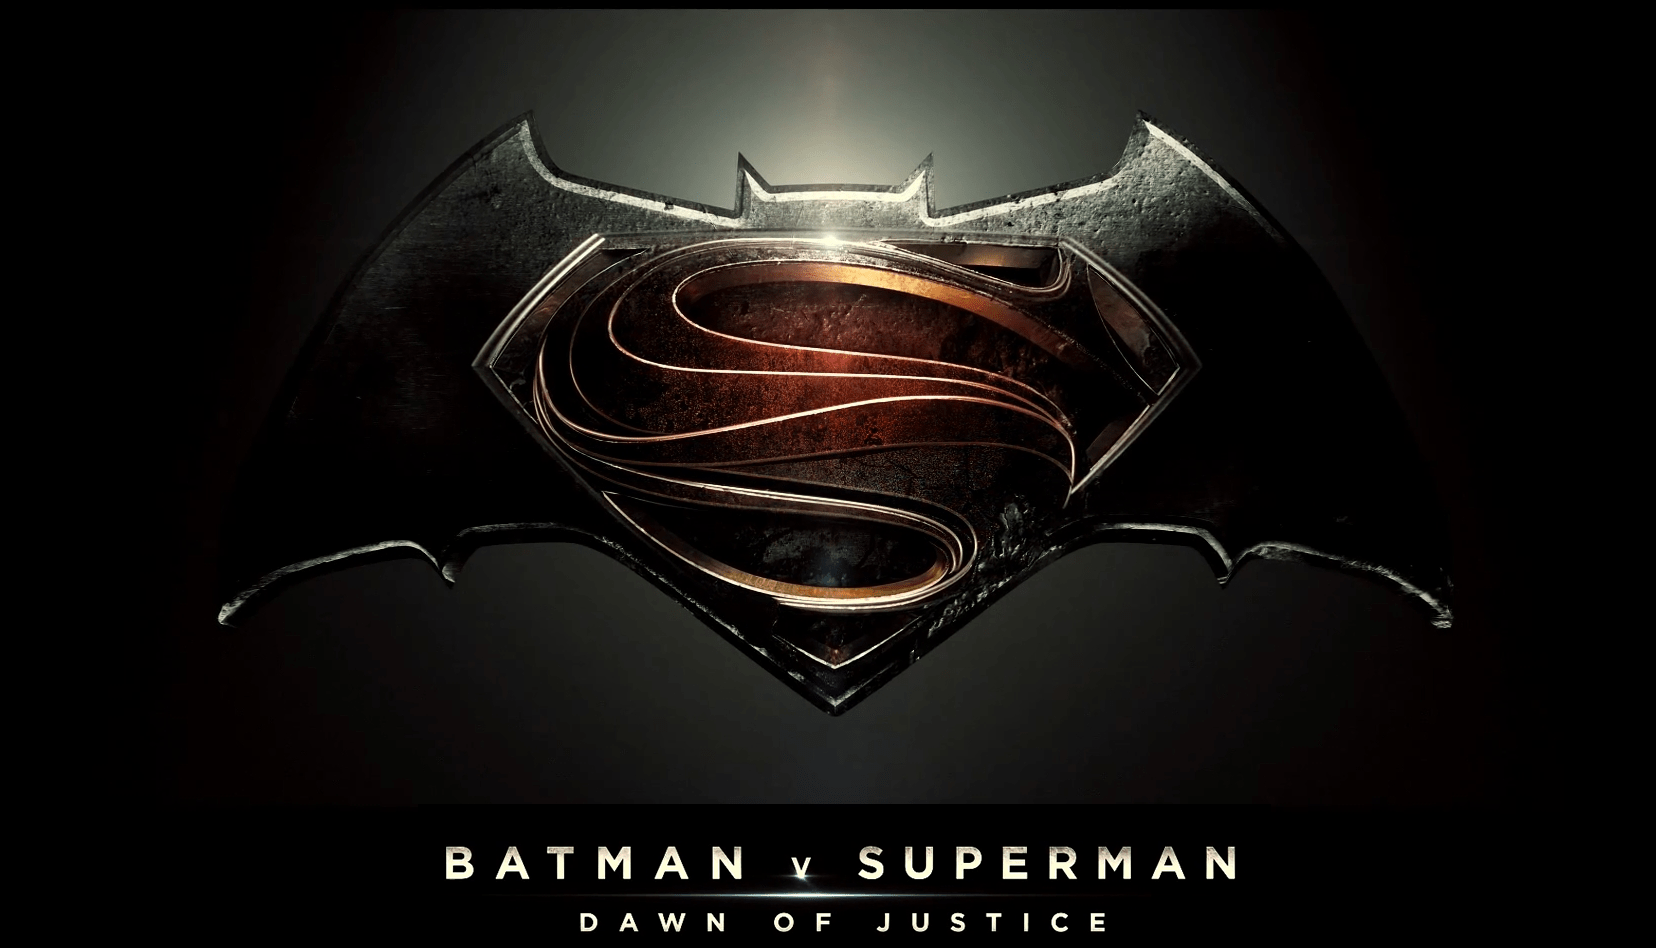 Batman V Superman - Trailer